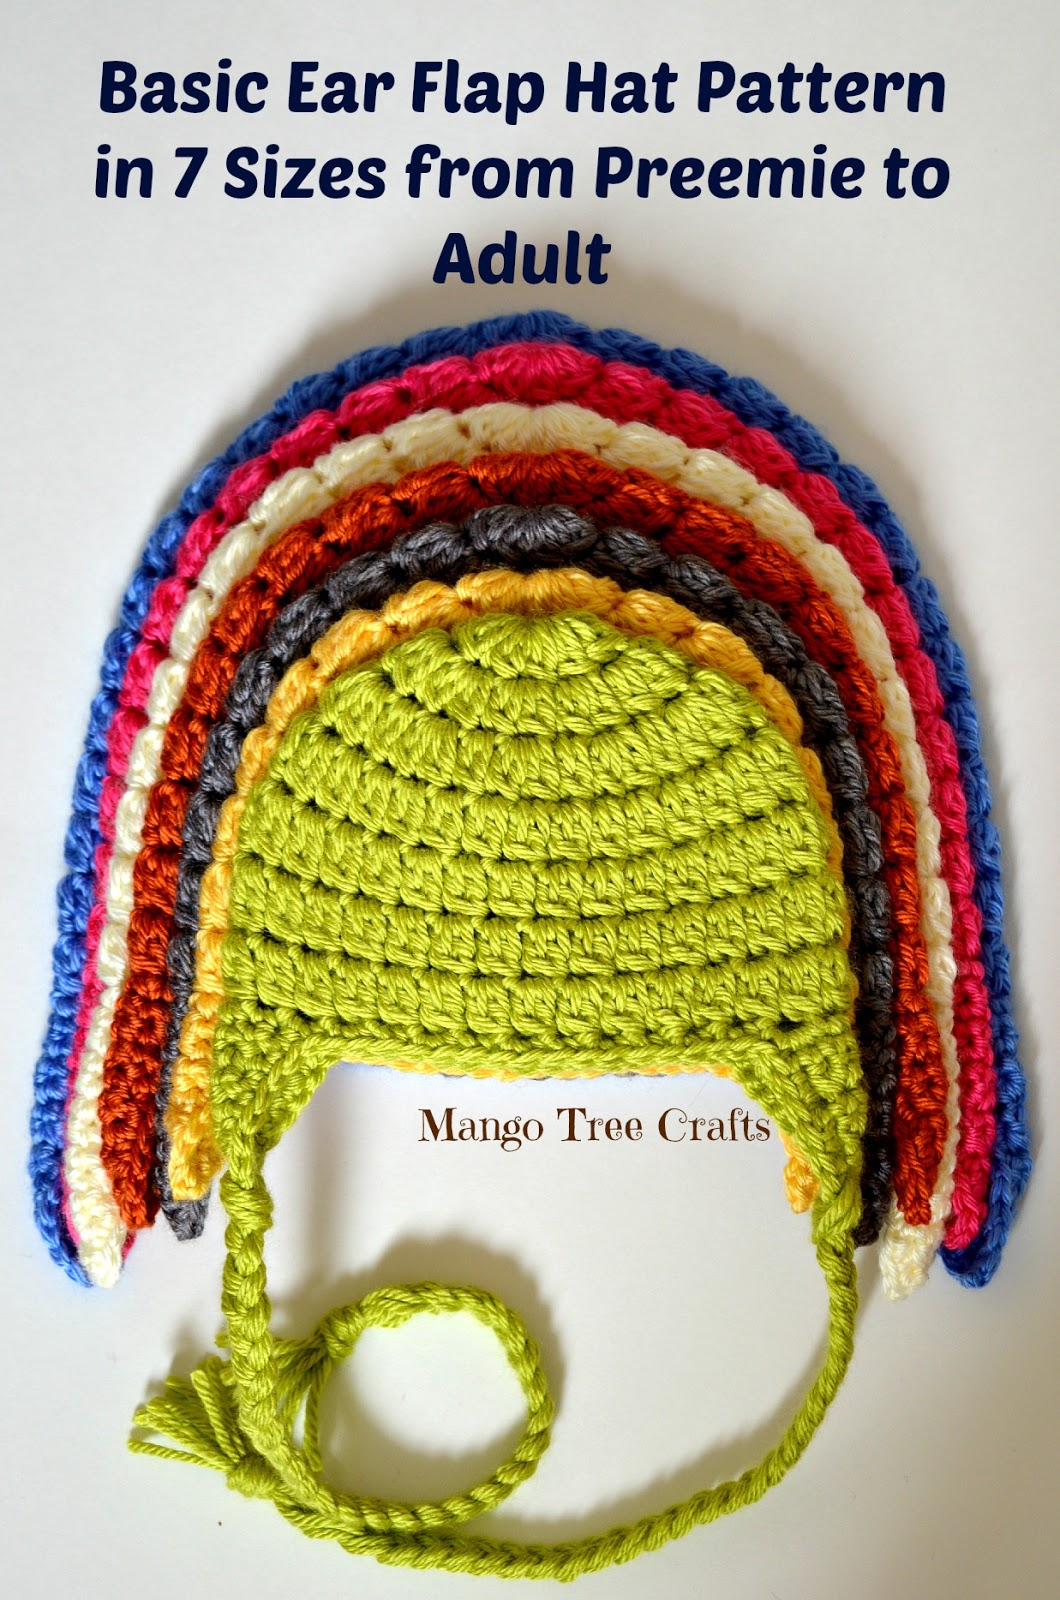 Free Crochet Pattern Toddler Hat Ear Flaps : Mango Tree Crafts: Basic Crochet Ear Flap Hat Pattern in 7 ...